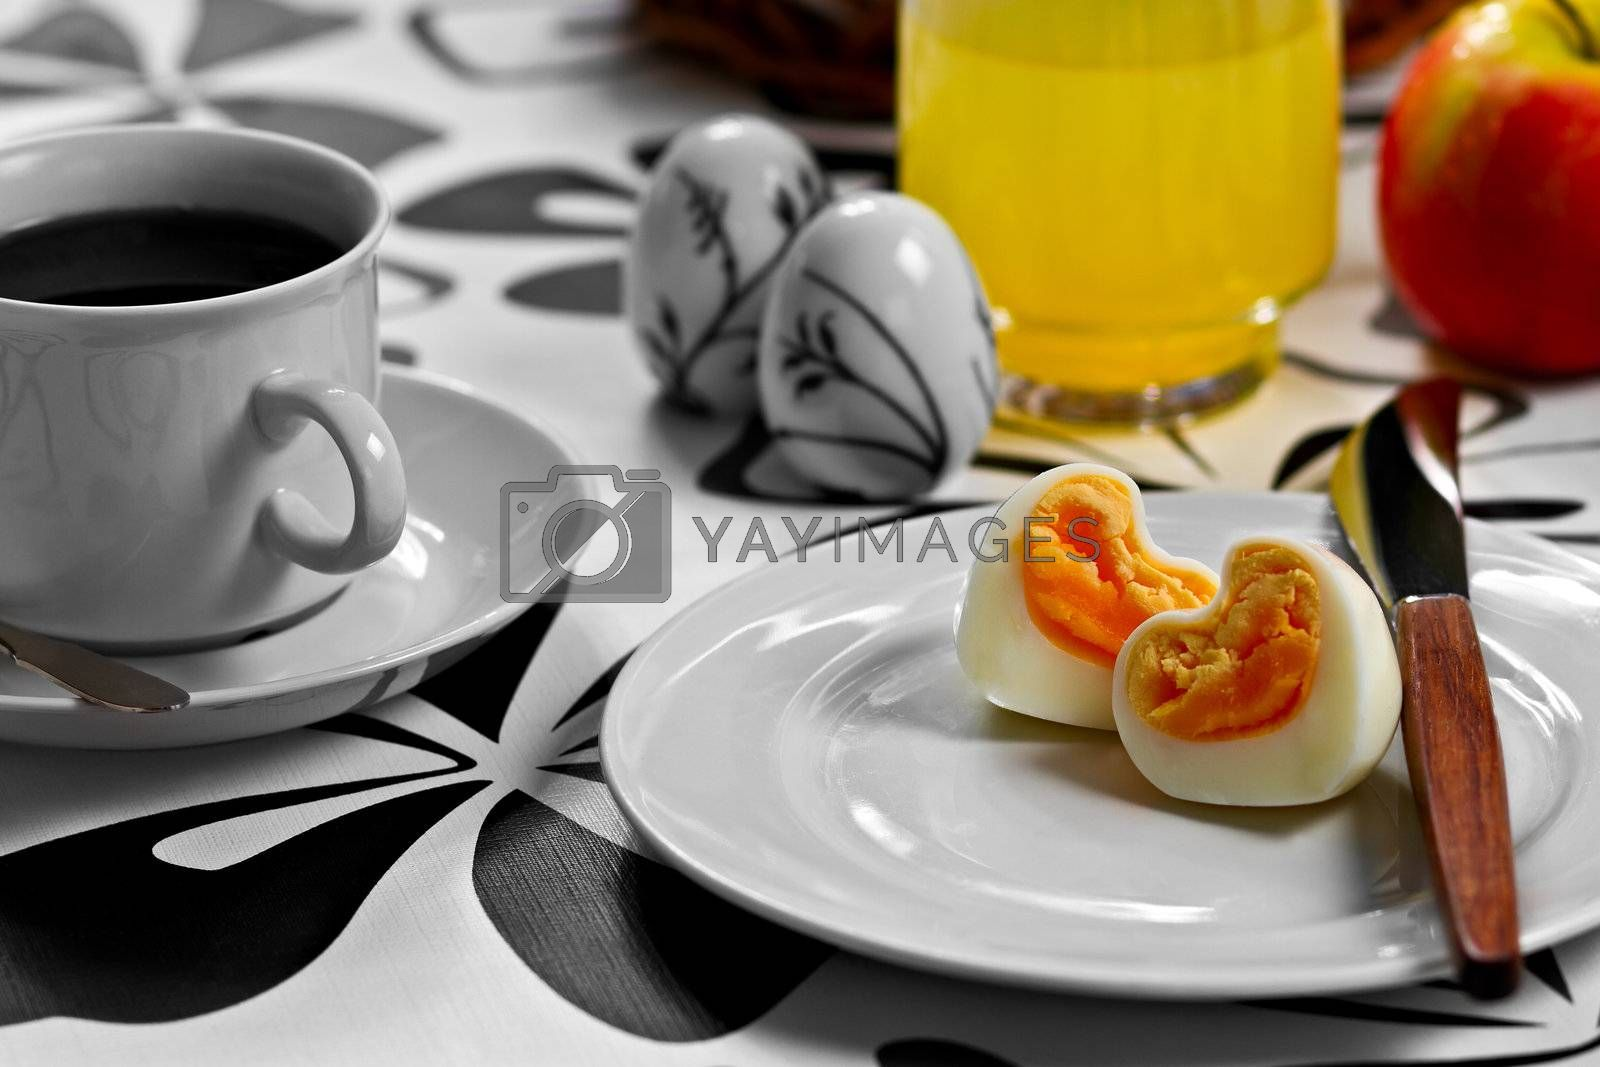 Breakfast with heart shaped egg, coffee, orange juice and an apple